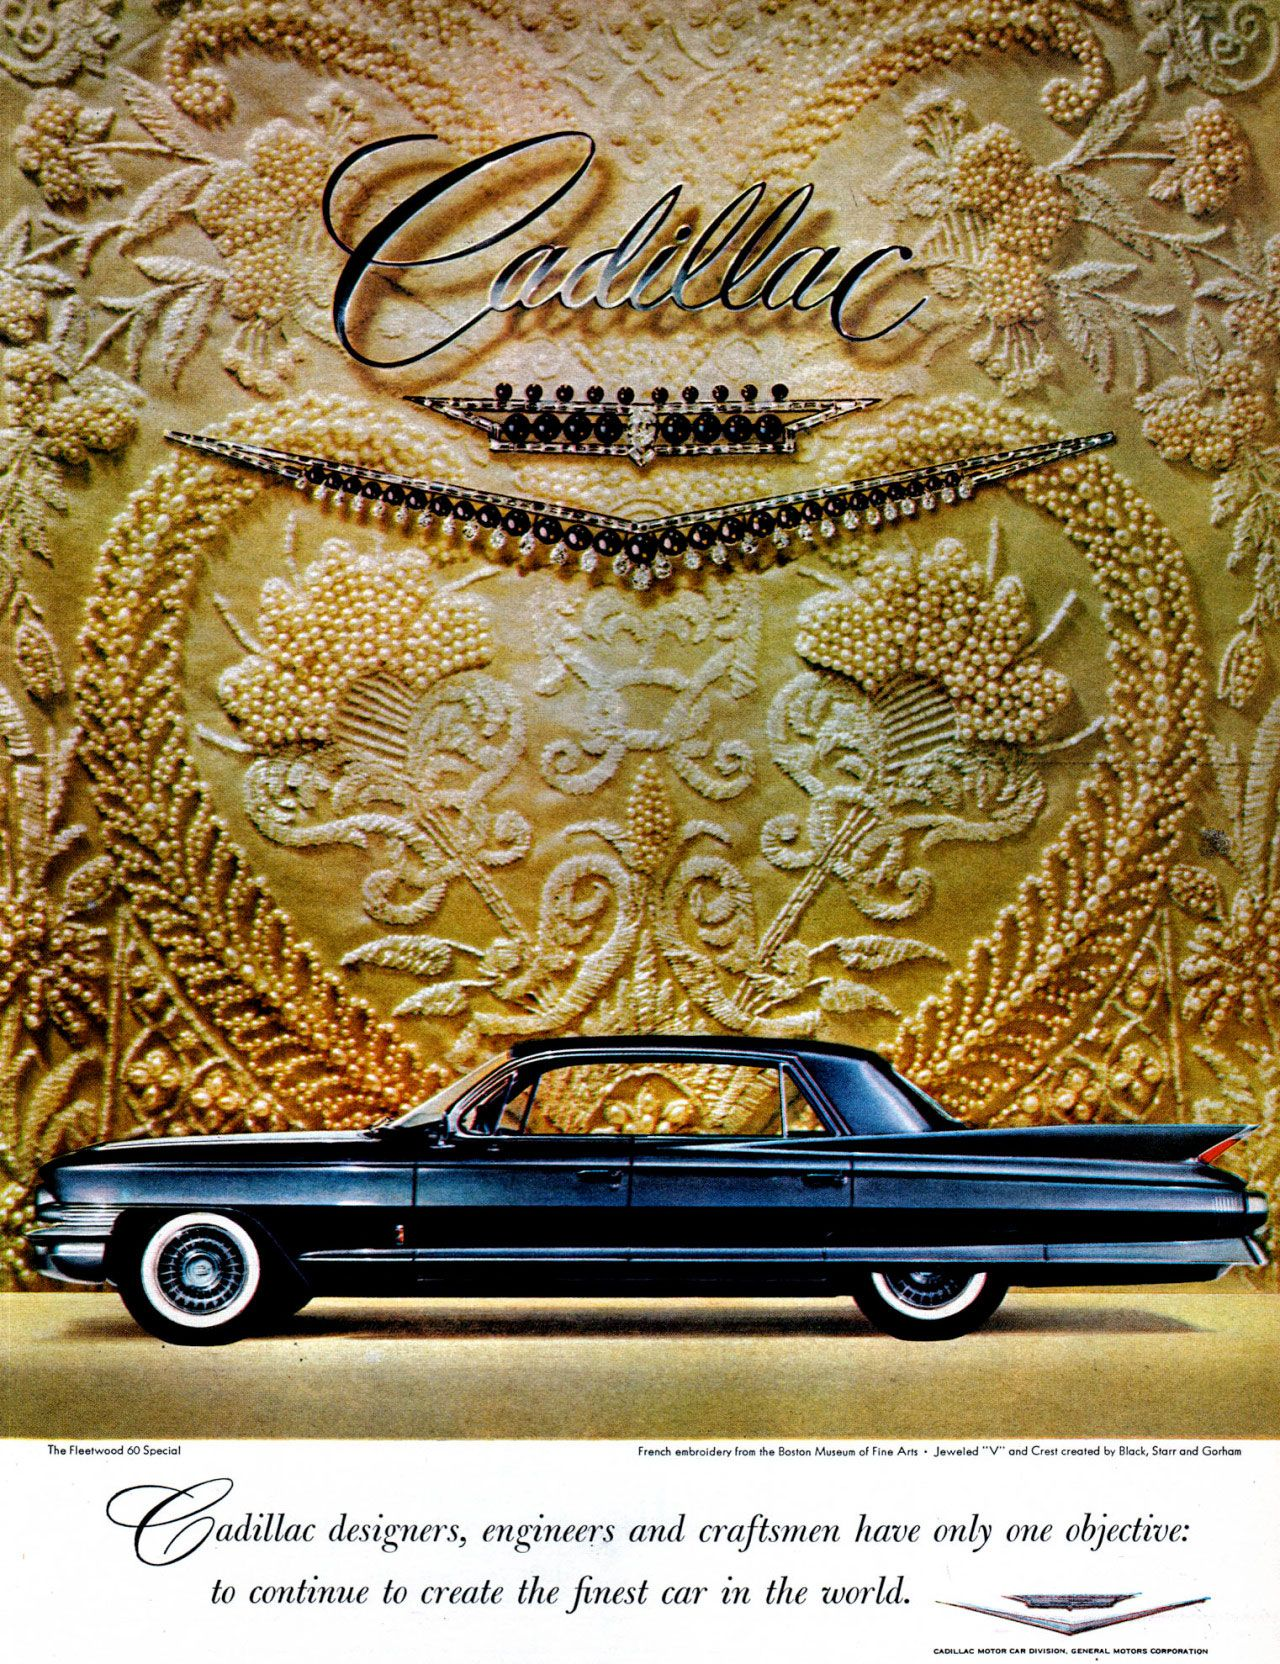 Cadillac designers, engineers and craftsmen have only one objective: to continue to create the finest car in the world.